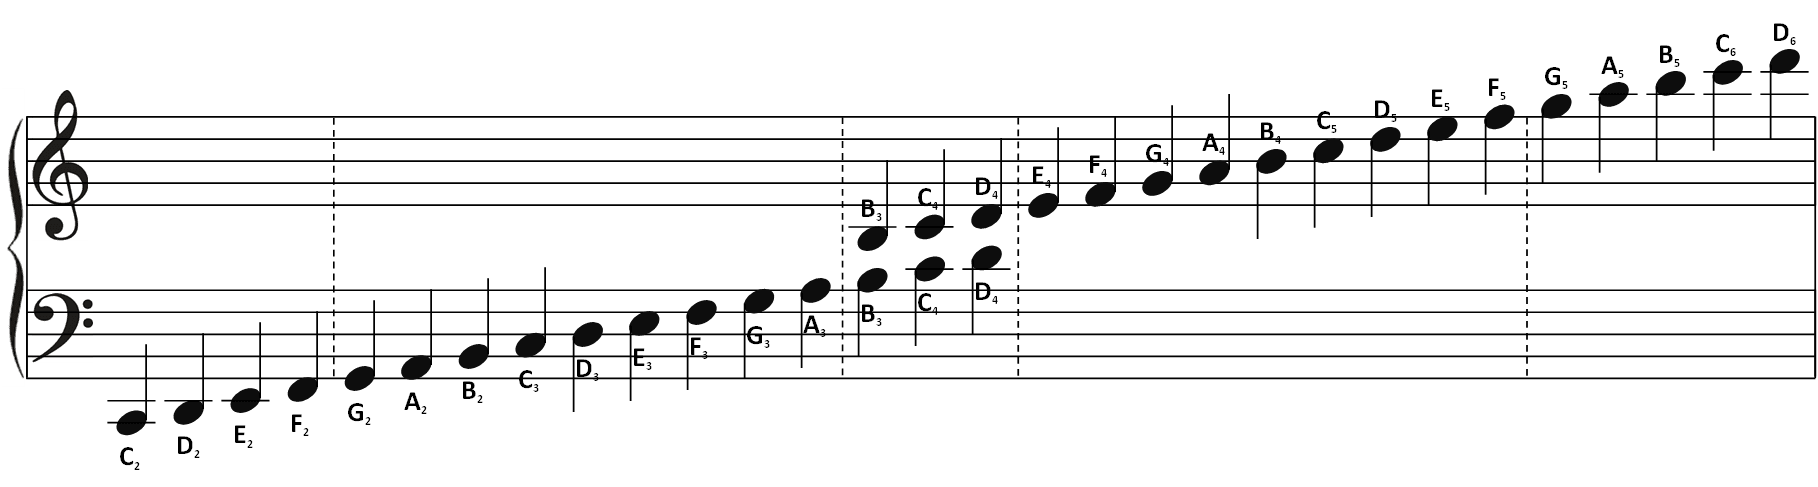 Study bass note reading